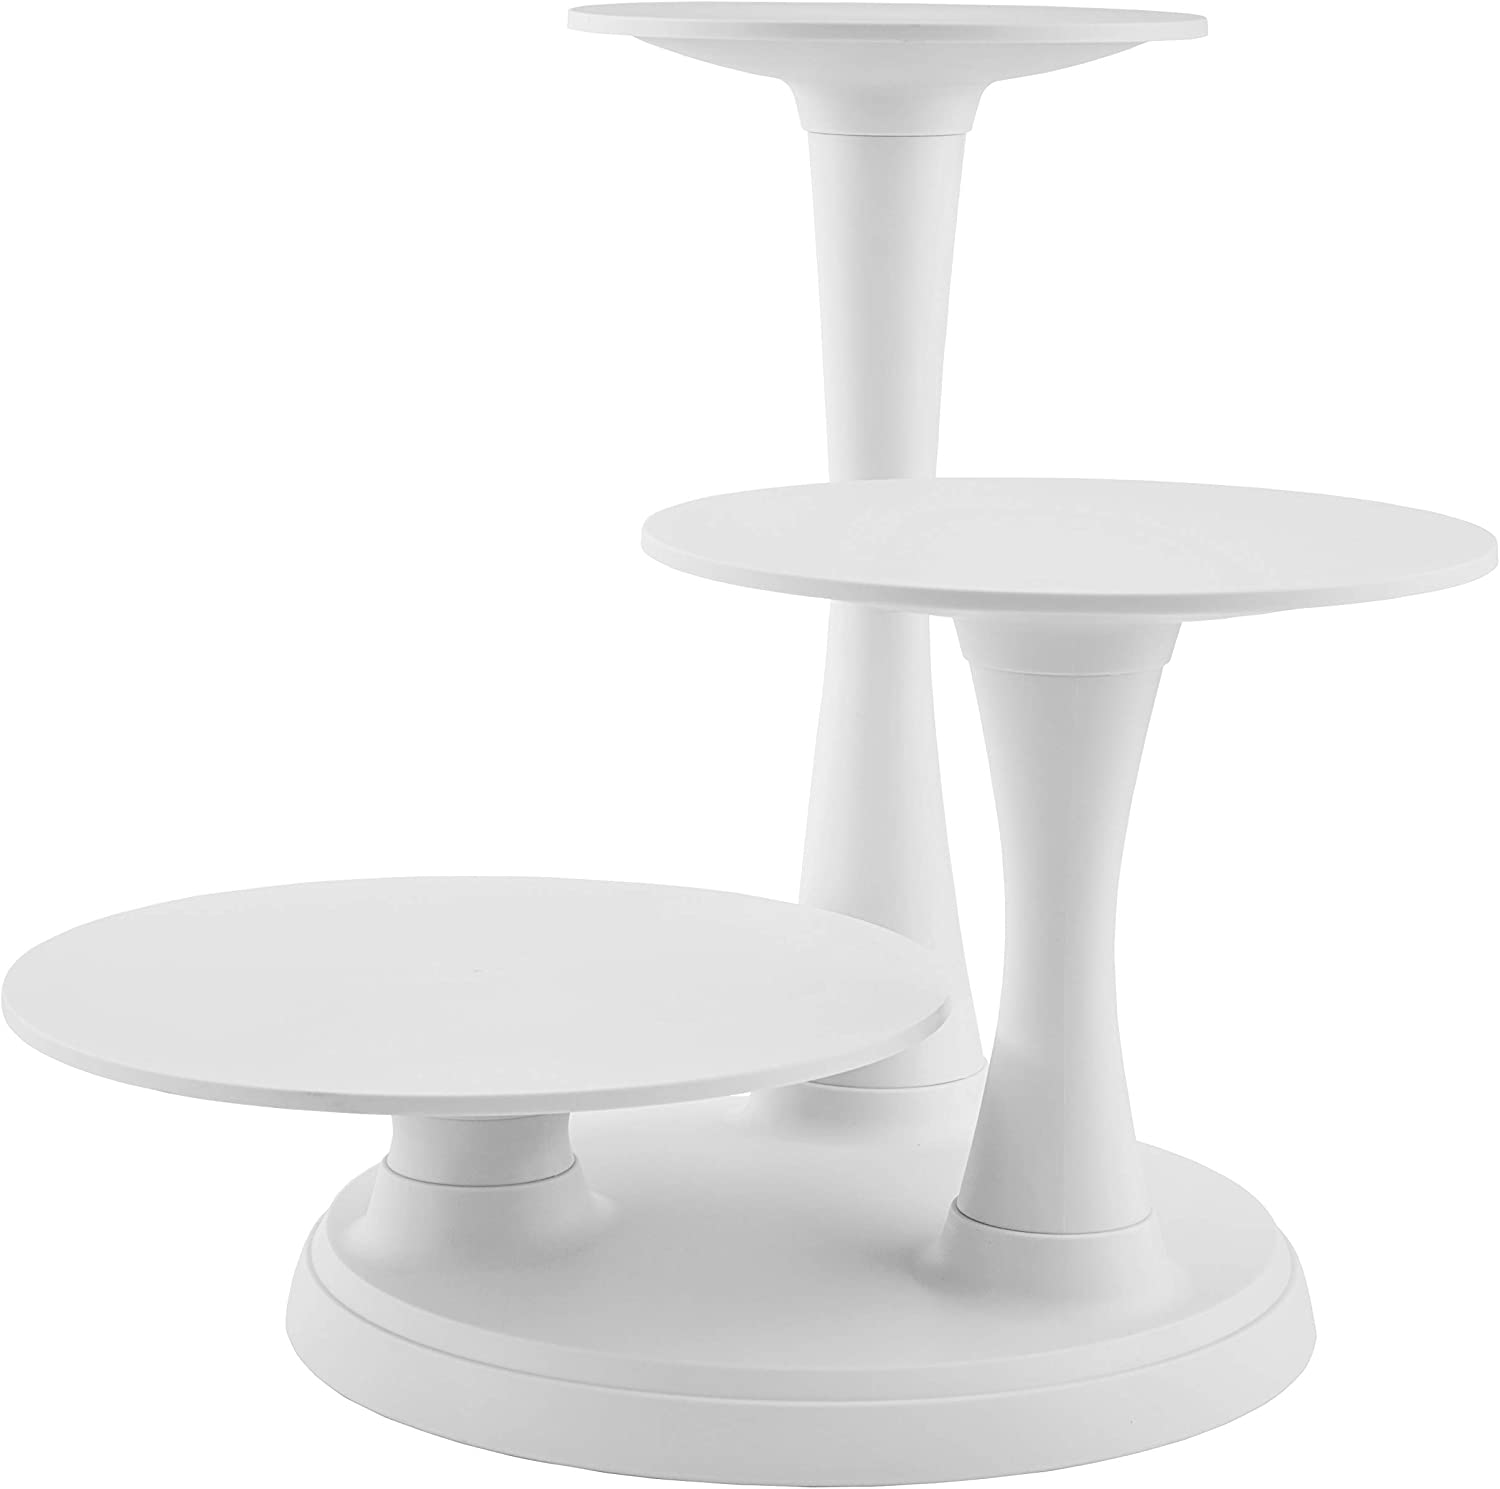 Amazon Com Wilton Pillar Style 3 Tier Cupcake Dessert And Cake Stand Decorating Tools Cake Stands